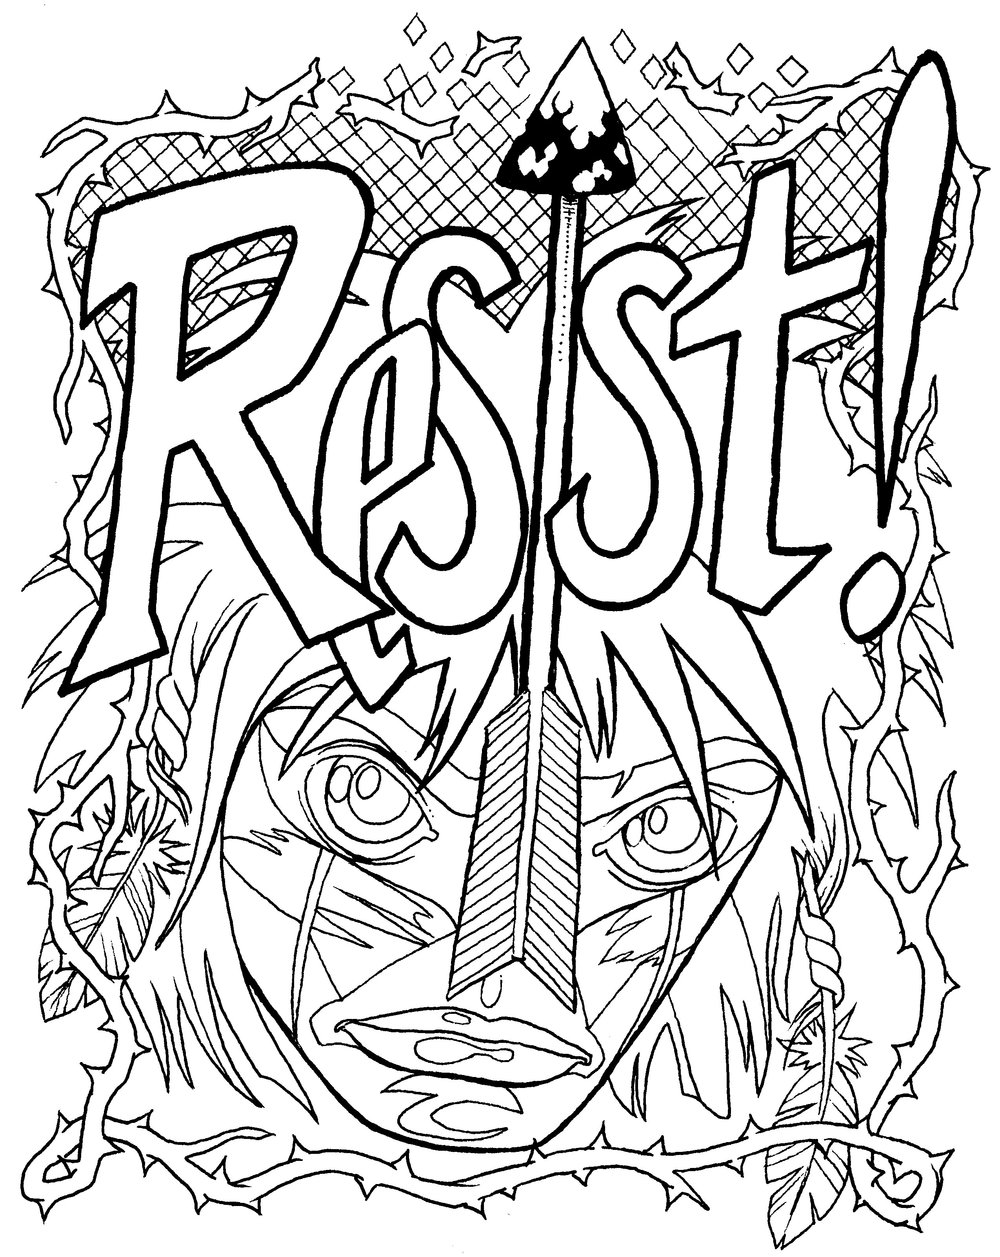 Coloring Page : Resist (Warrior)